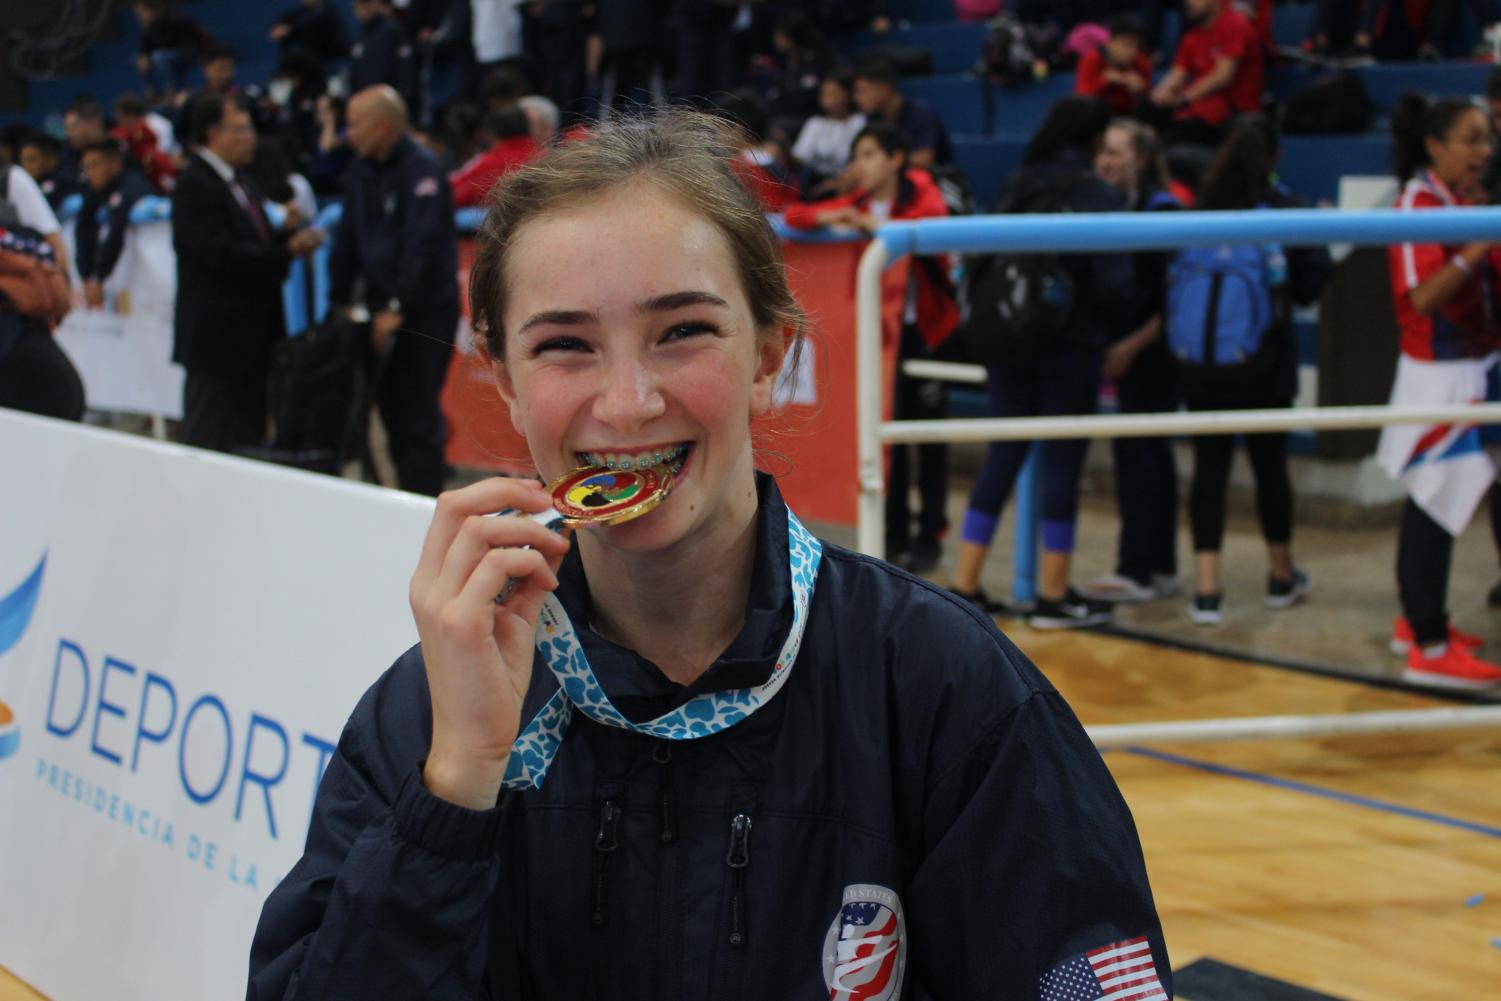 Victoria Princi bites down on her gold medal at the Pan-American tournament in Argentina.